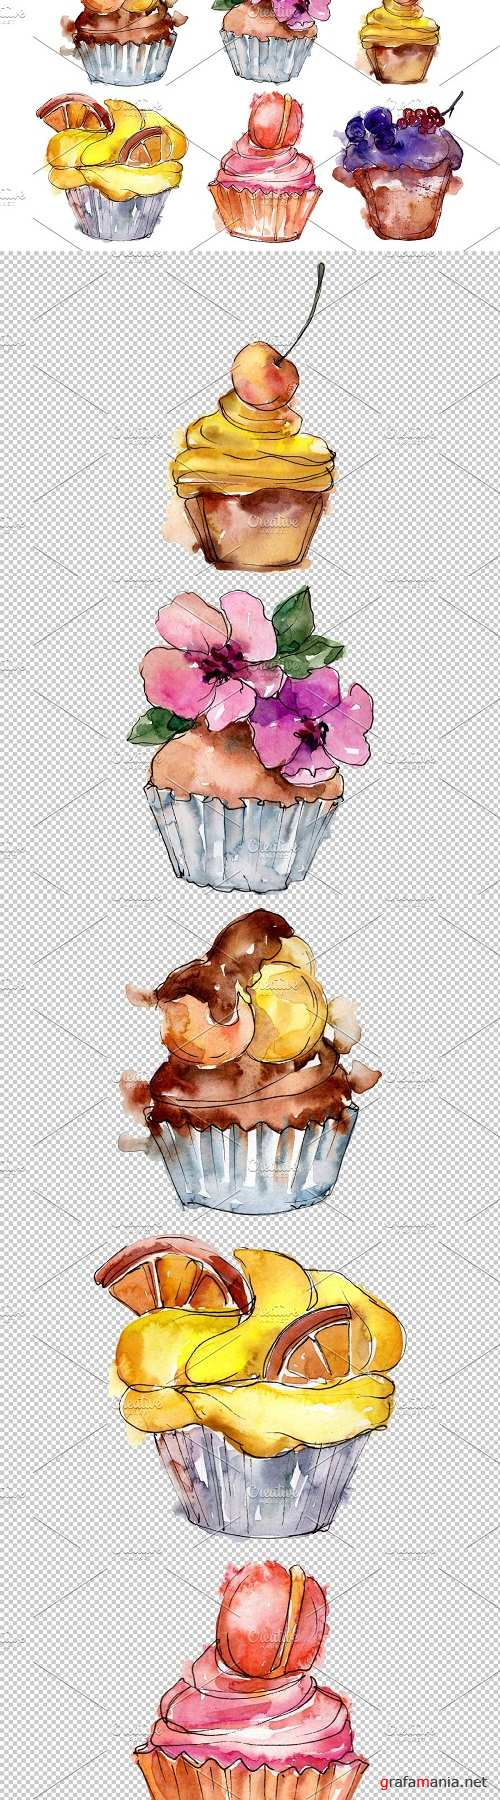 Dessert friday Watercolor png - 3568196